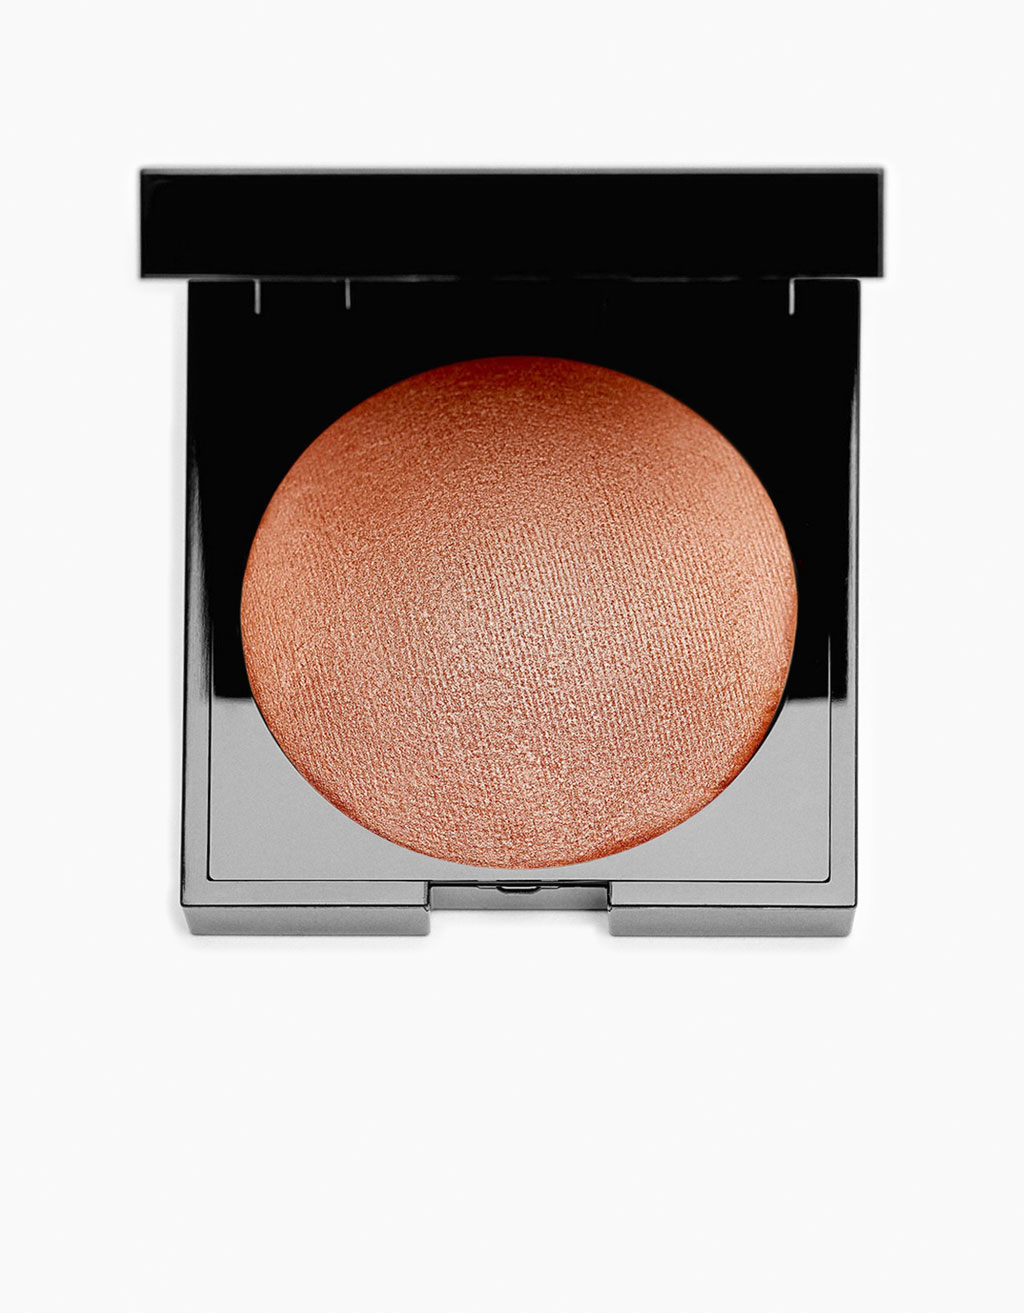 Bronzing Powder #nosunbuttanned